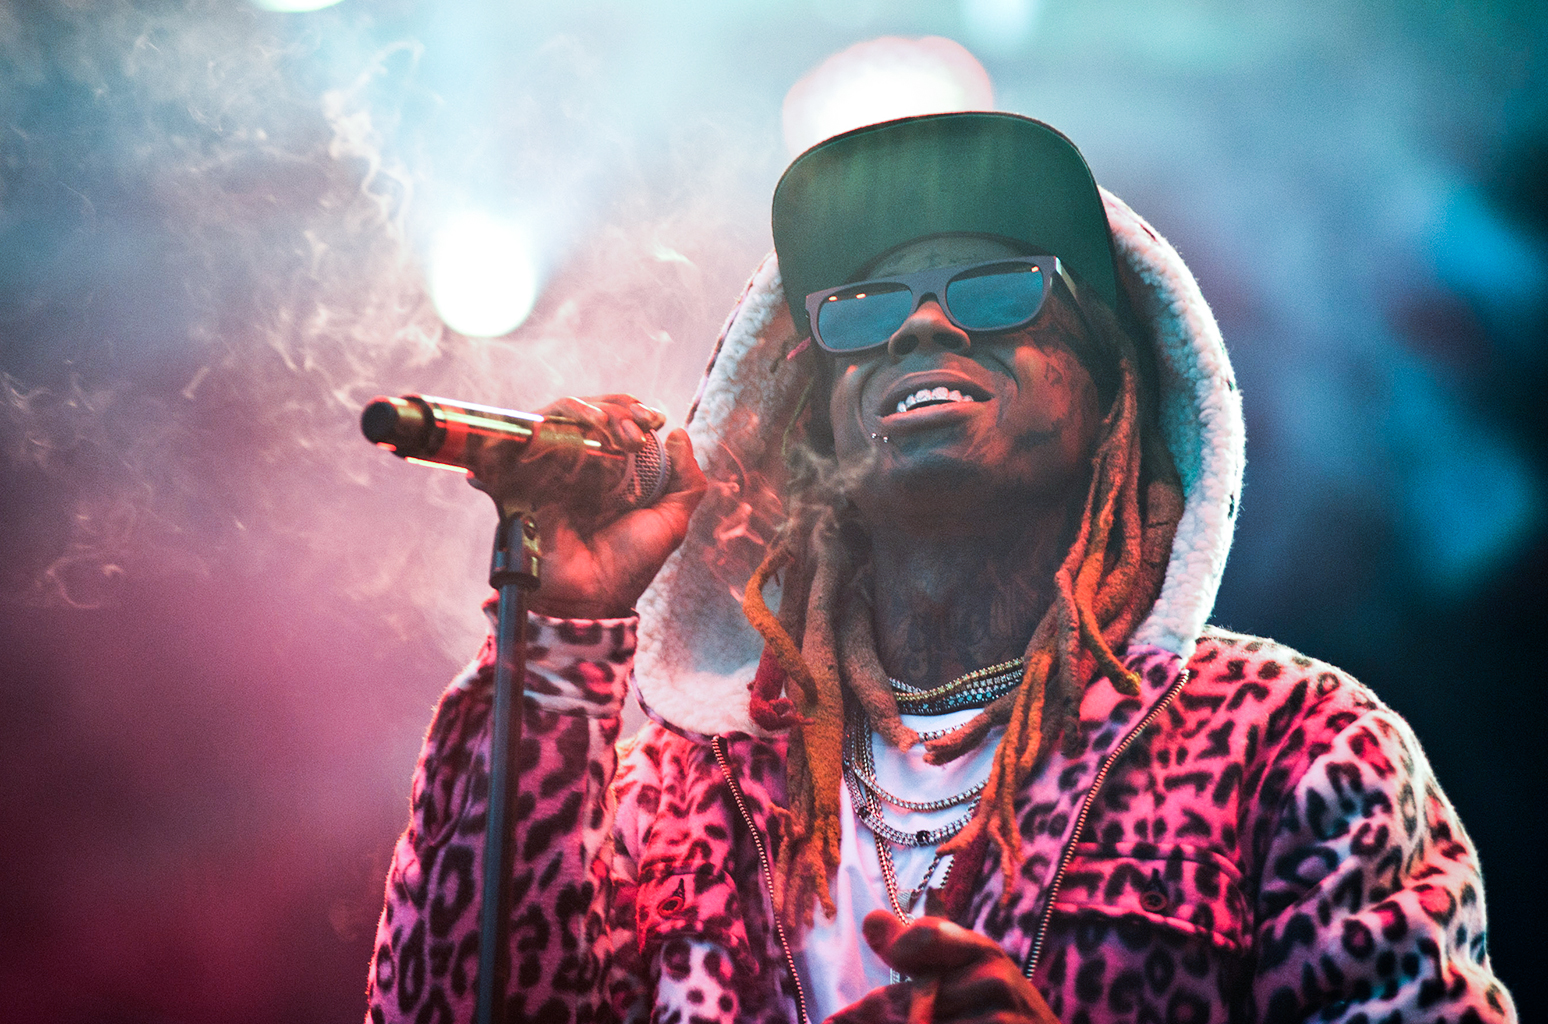 lil wayne Lil Wayne Has Become The Sole Owner Of Young Money lil wayne sept 2018 live billboard 1548